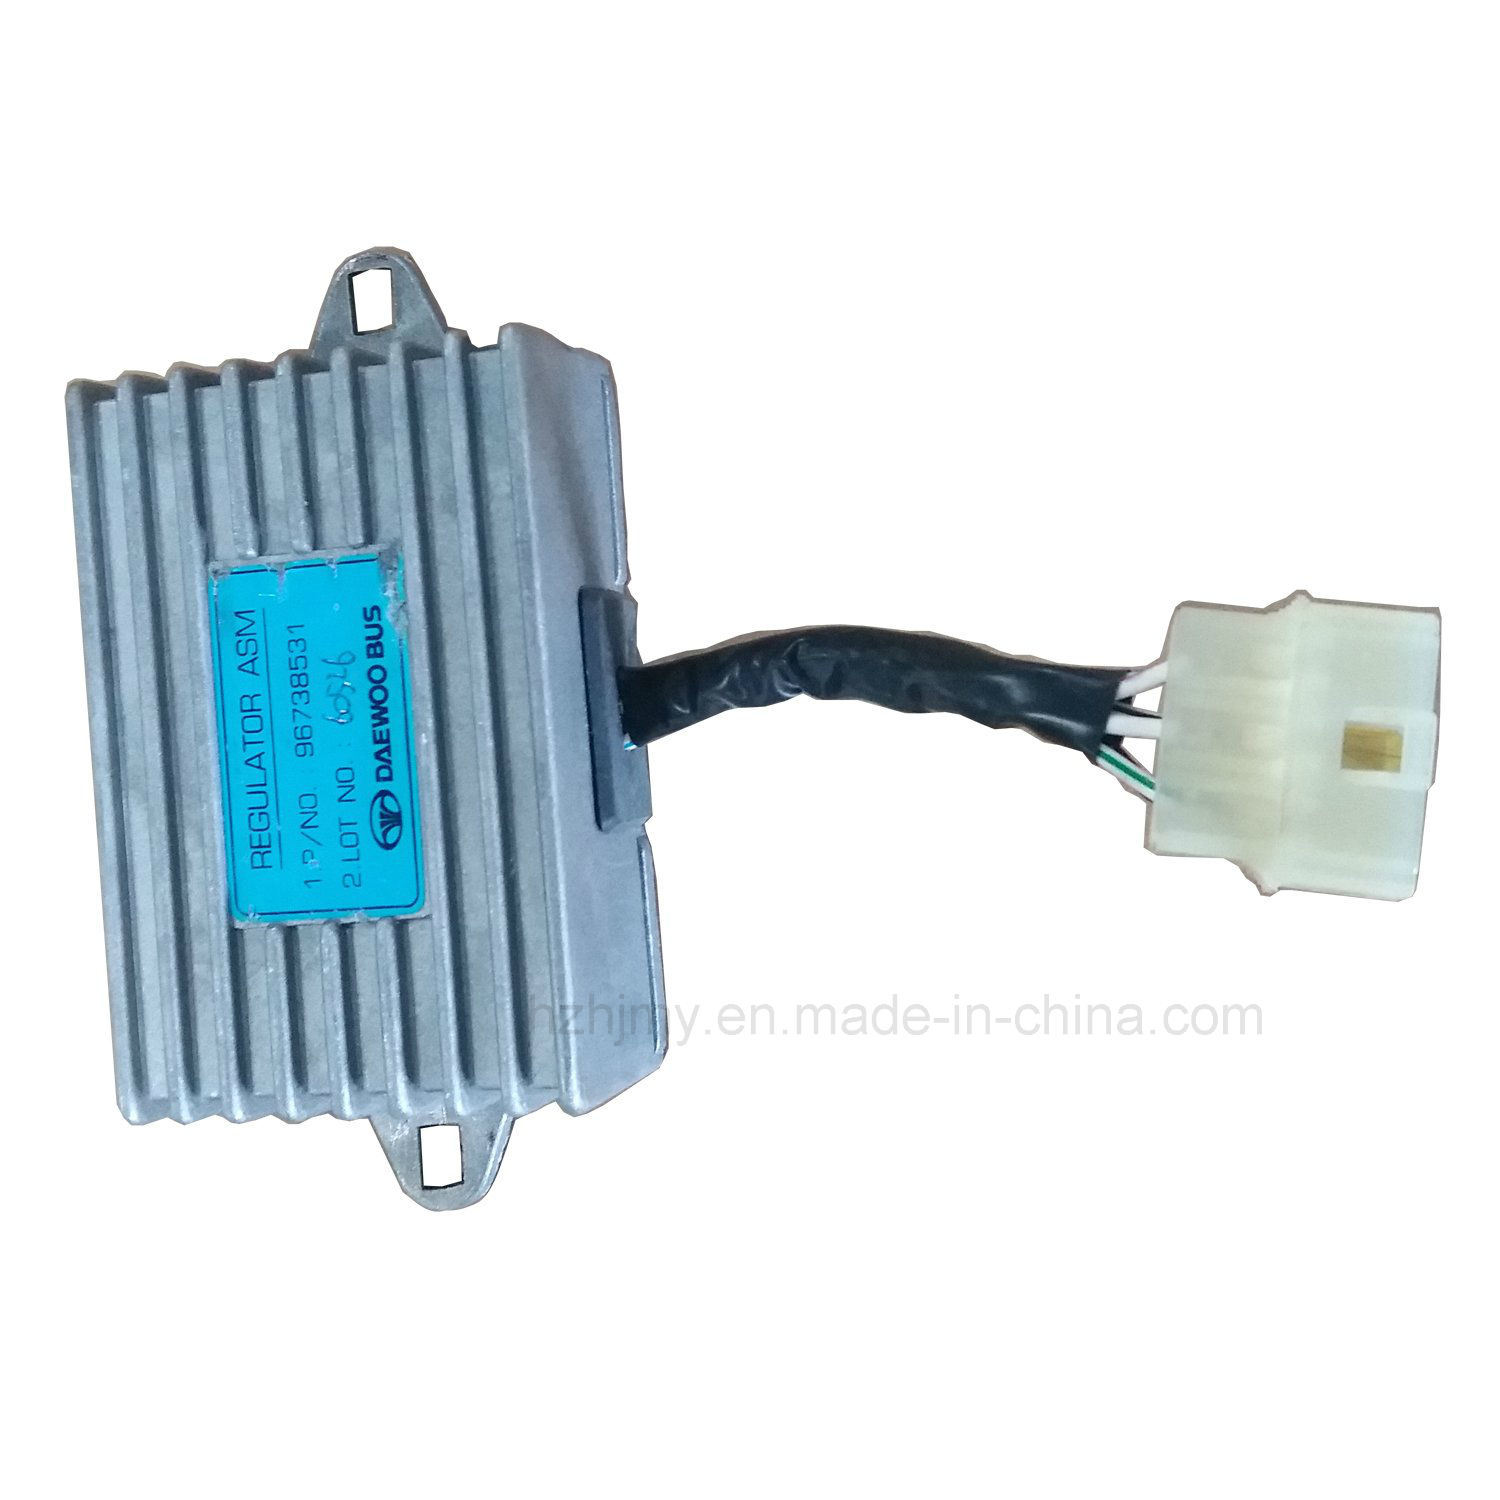 hight resolution of china 96738531 voltage regulator for engine accessory of daewoo bus china engine accessory voltage regulator